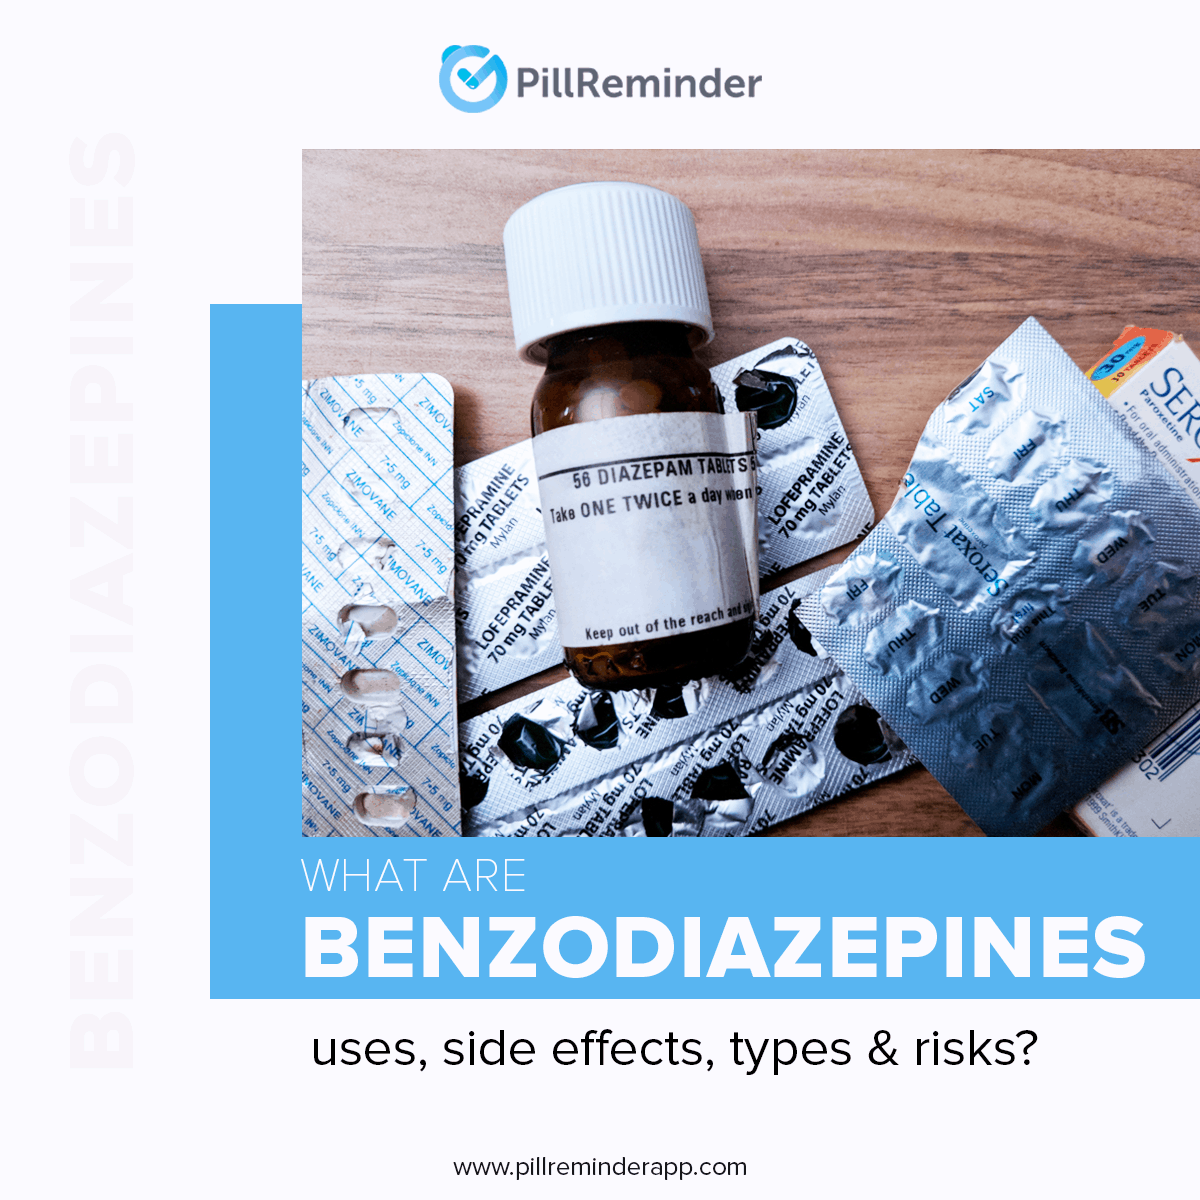 What Are Benzodiazepines' Uses, Side Effects, Types & Risks